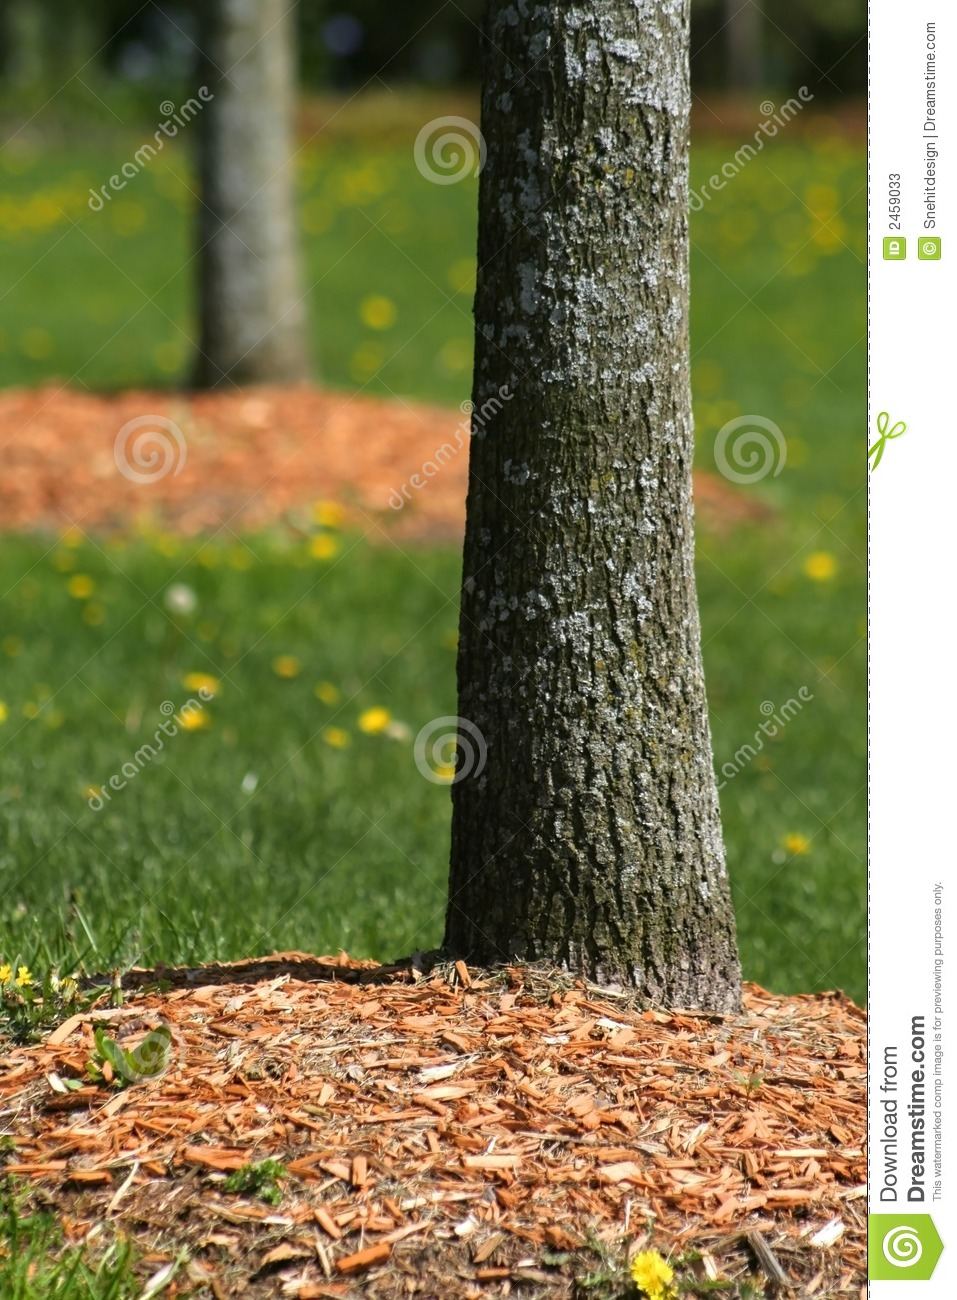 tree stems stock image image of bough green nature